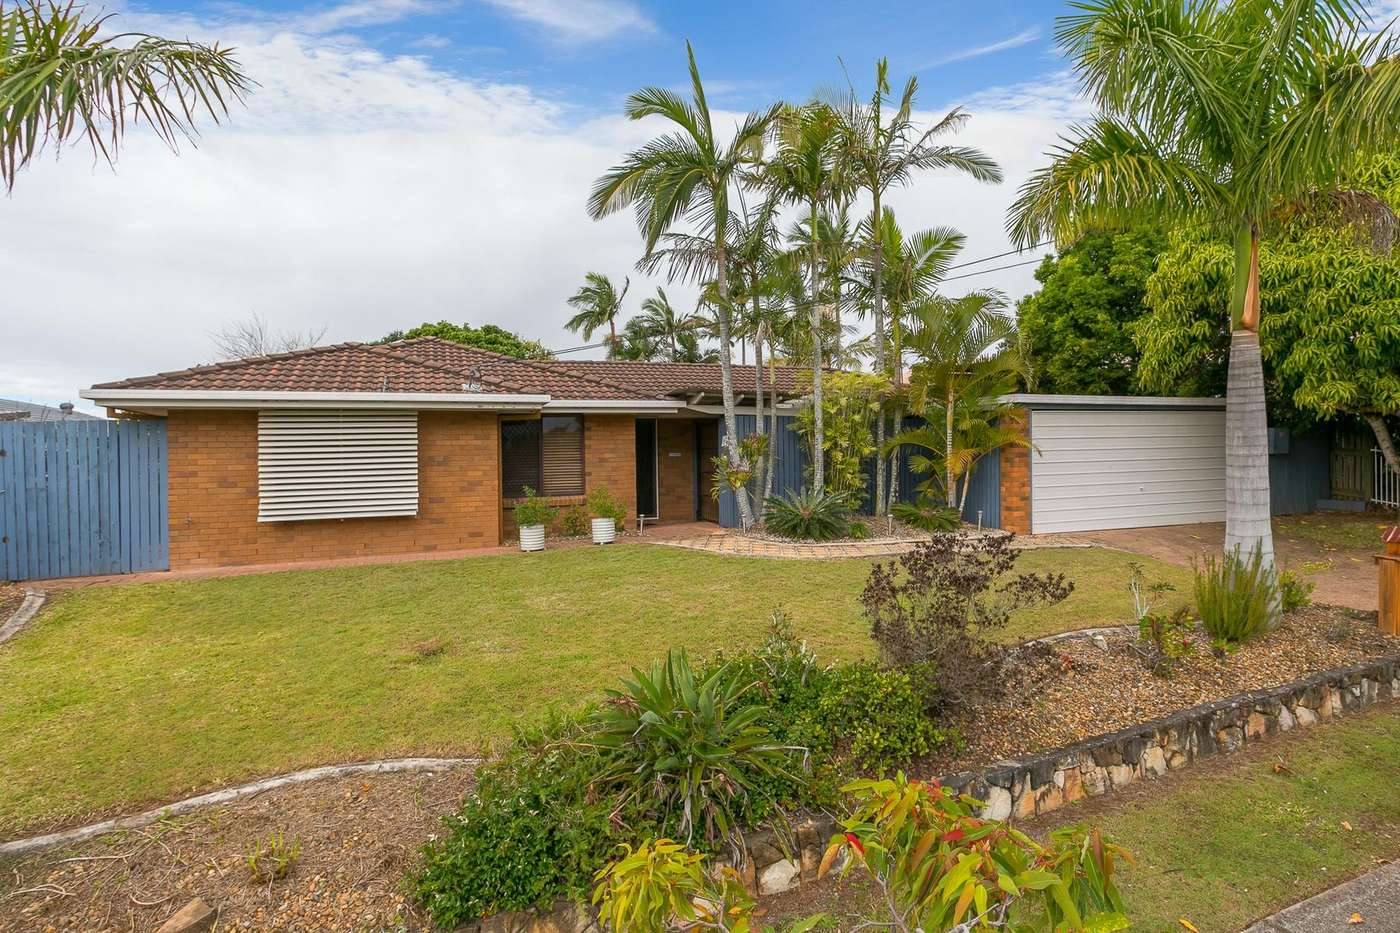 Main view of Homely house listing, 39 Monica Street, Rochedale South, QLD 4123